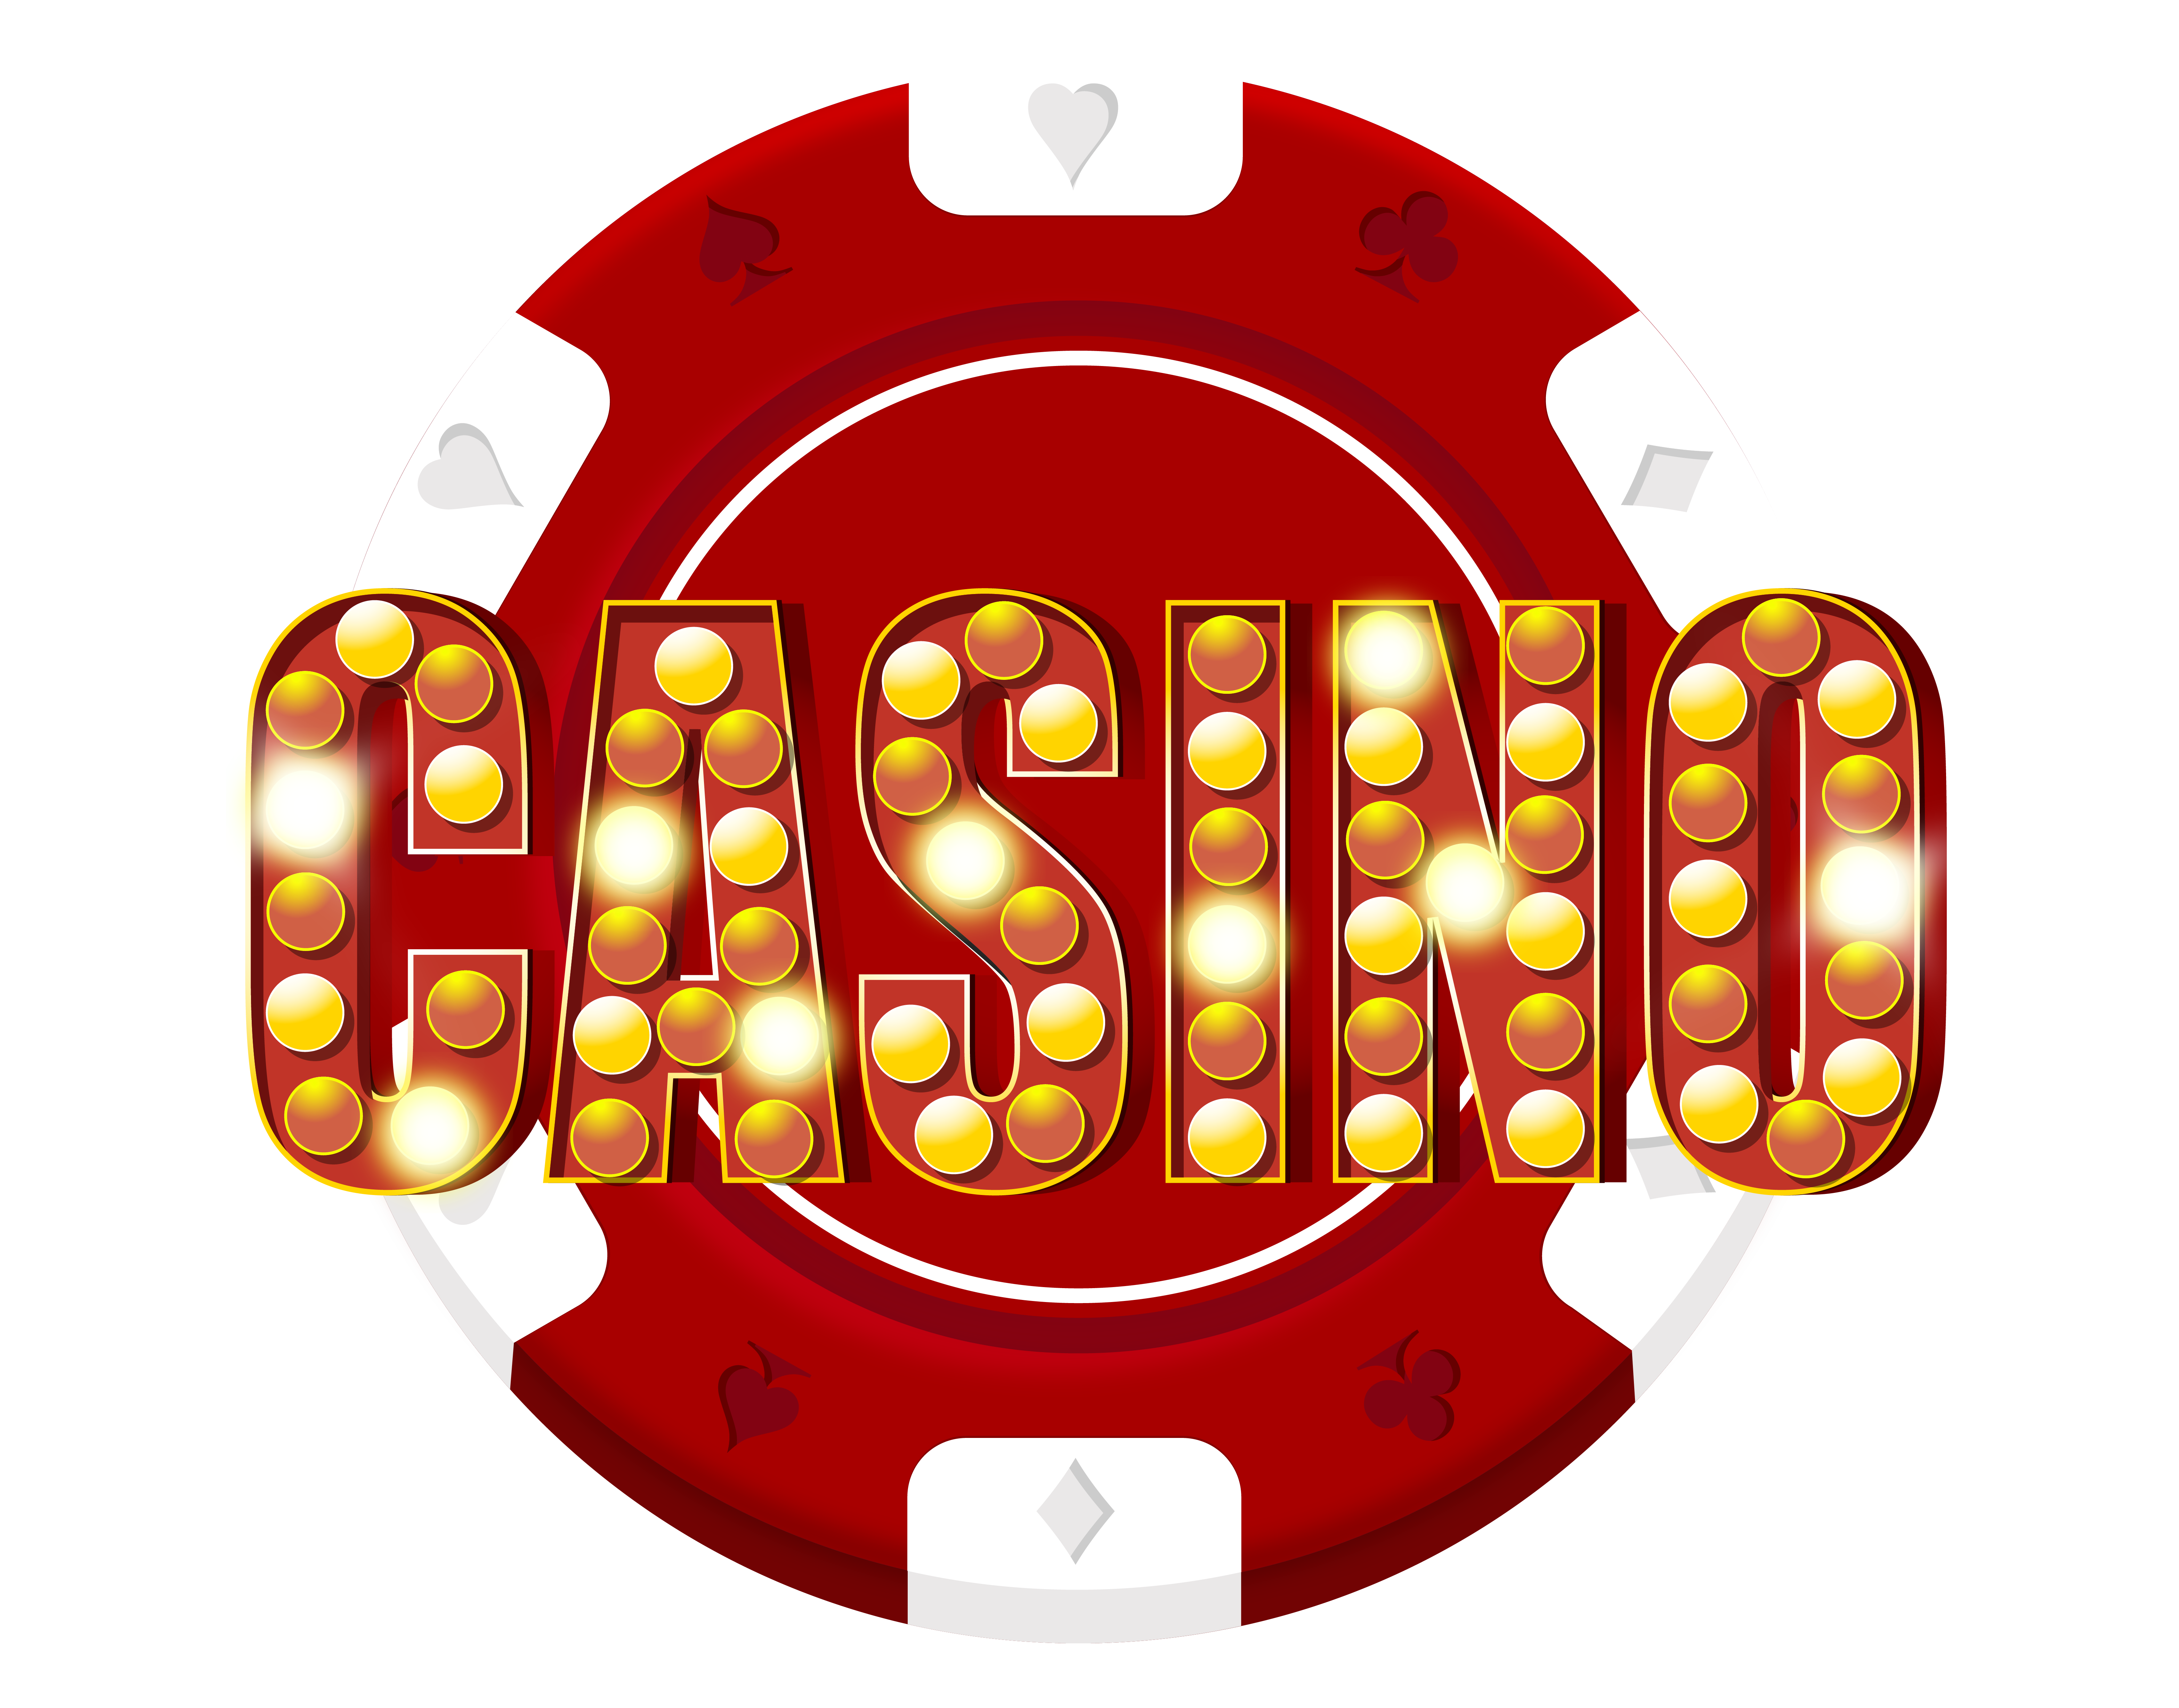 vector library stock Las vegas clipart casino royale. Red chip decoration png